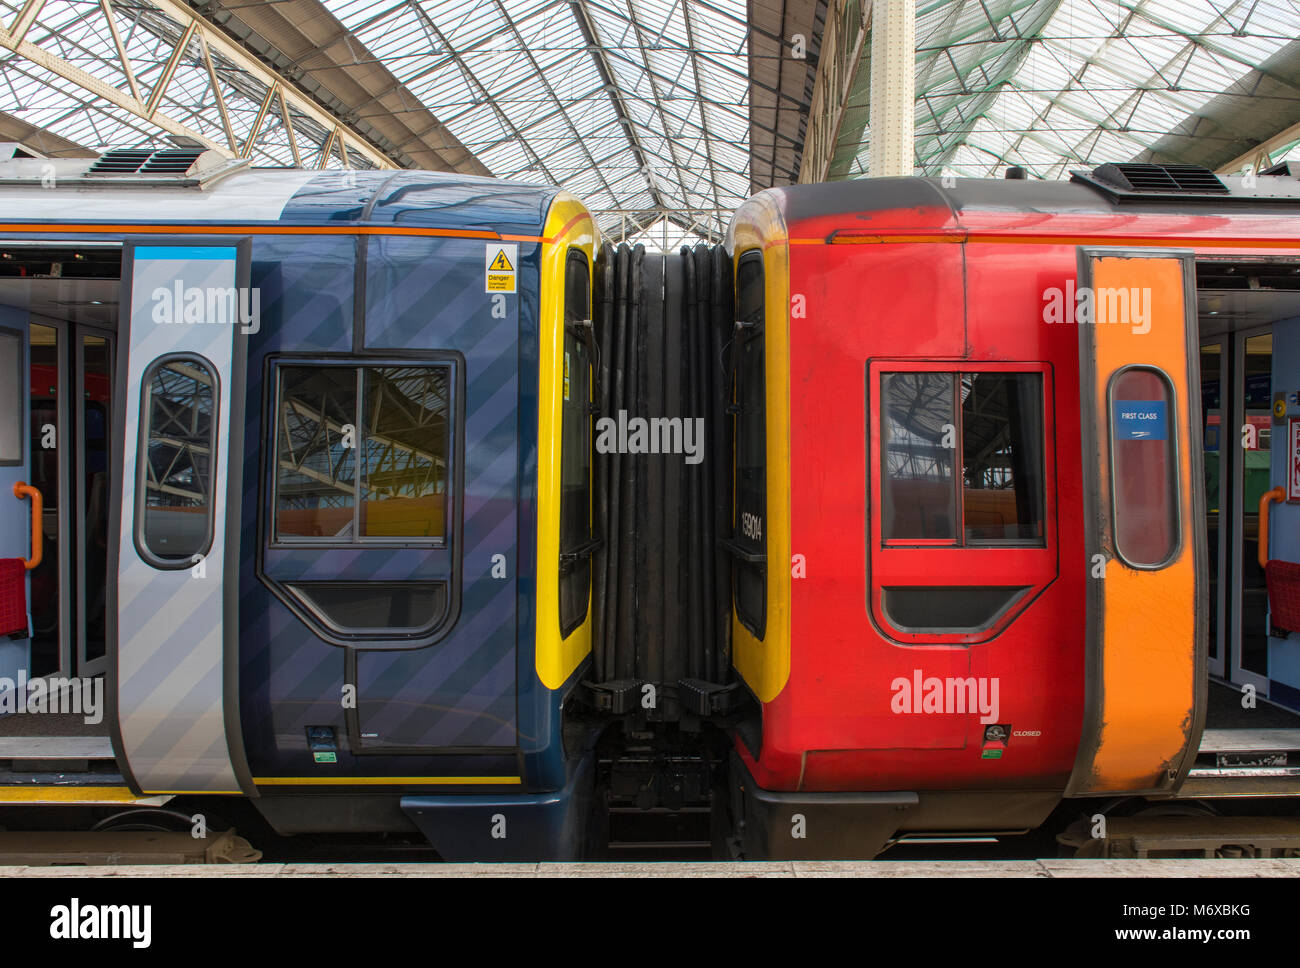 Train operating companies rolling stock in the plate form at london waterloo station during the changing of the - Stock Image